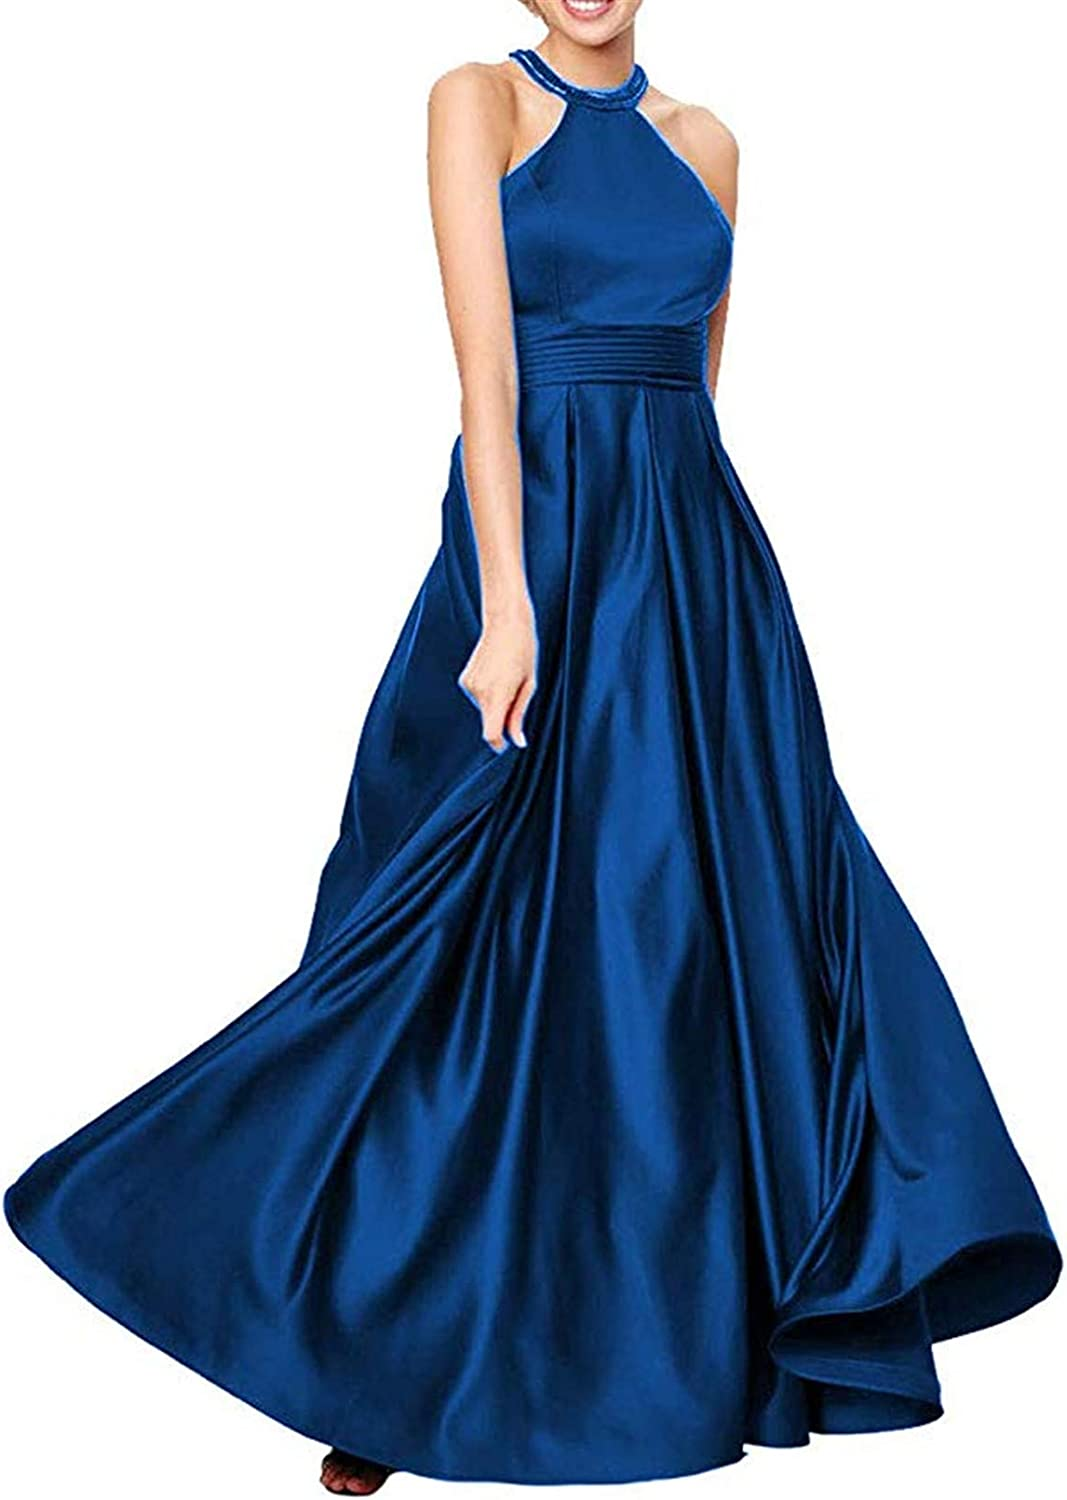 Falydal Women's A Line Formal Party Gowns Long Halter Prom Dress with Pockets